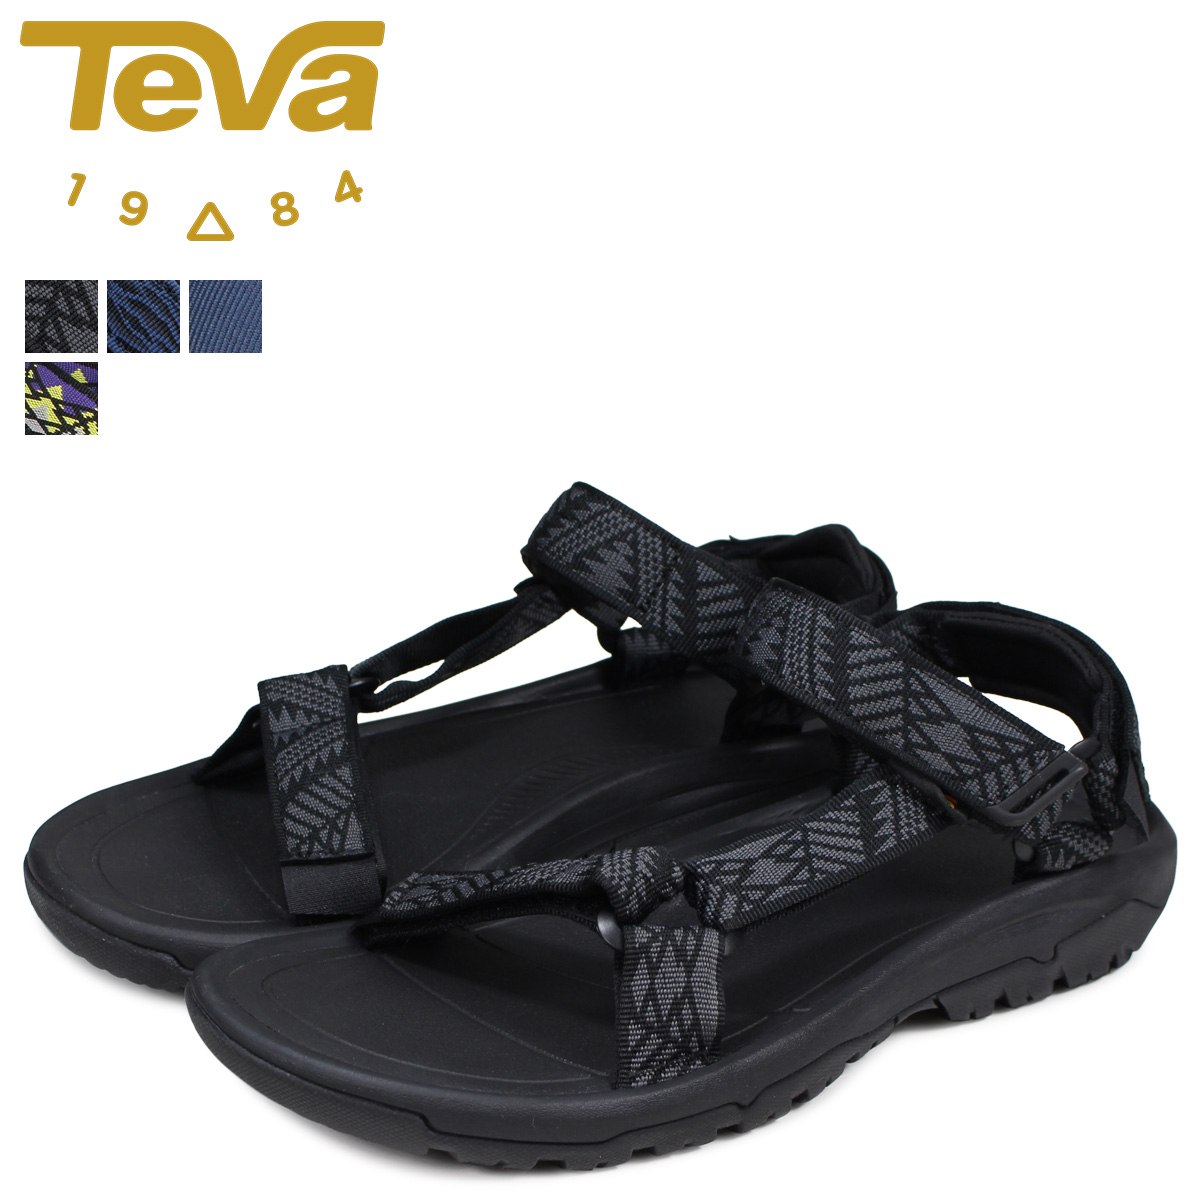 210f29bbf128 Teva Teva sandals hurricane XLT 2 men s HURRICANE black blue black 1019234   load planned Shinnyu load in reservation product 3 13 containing